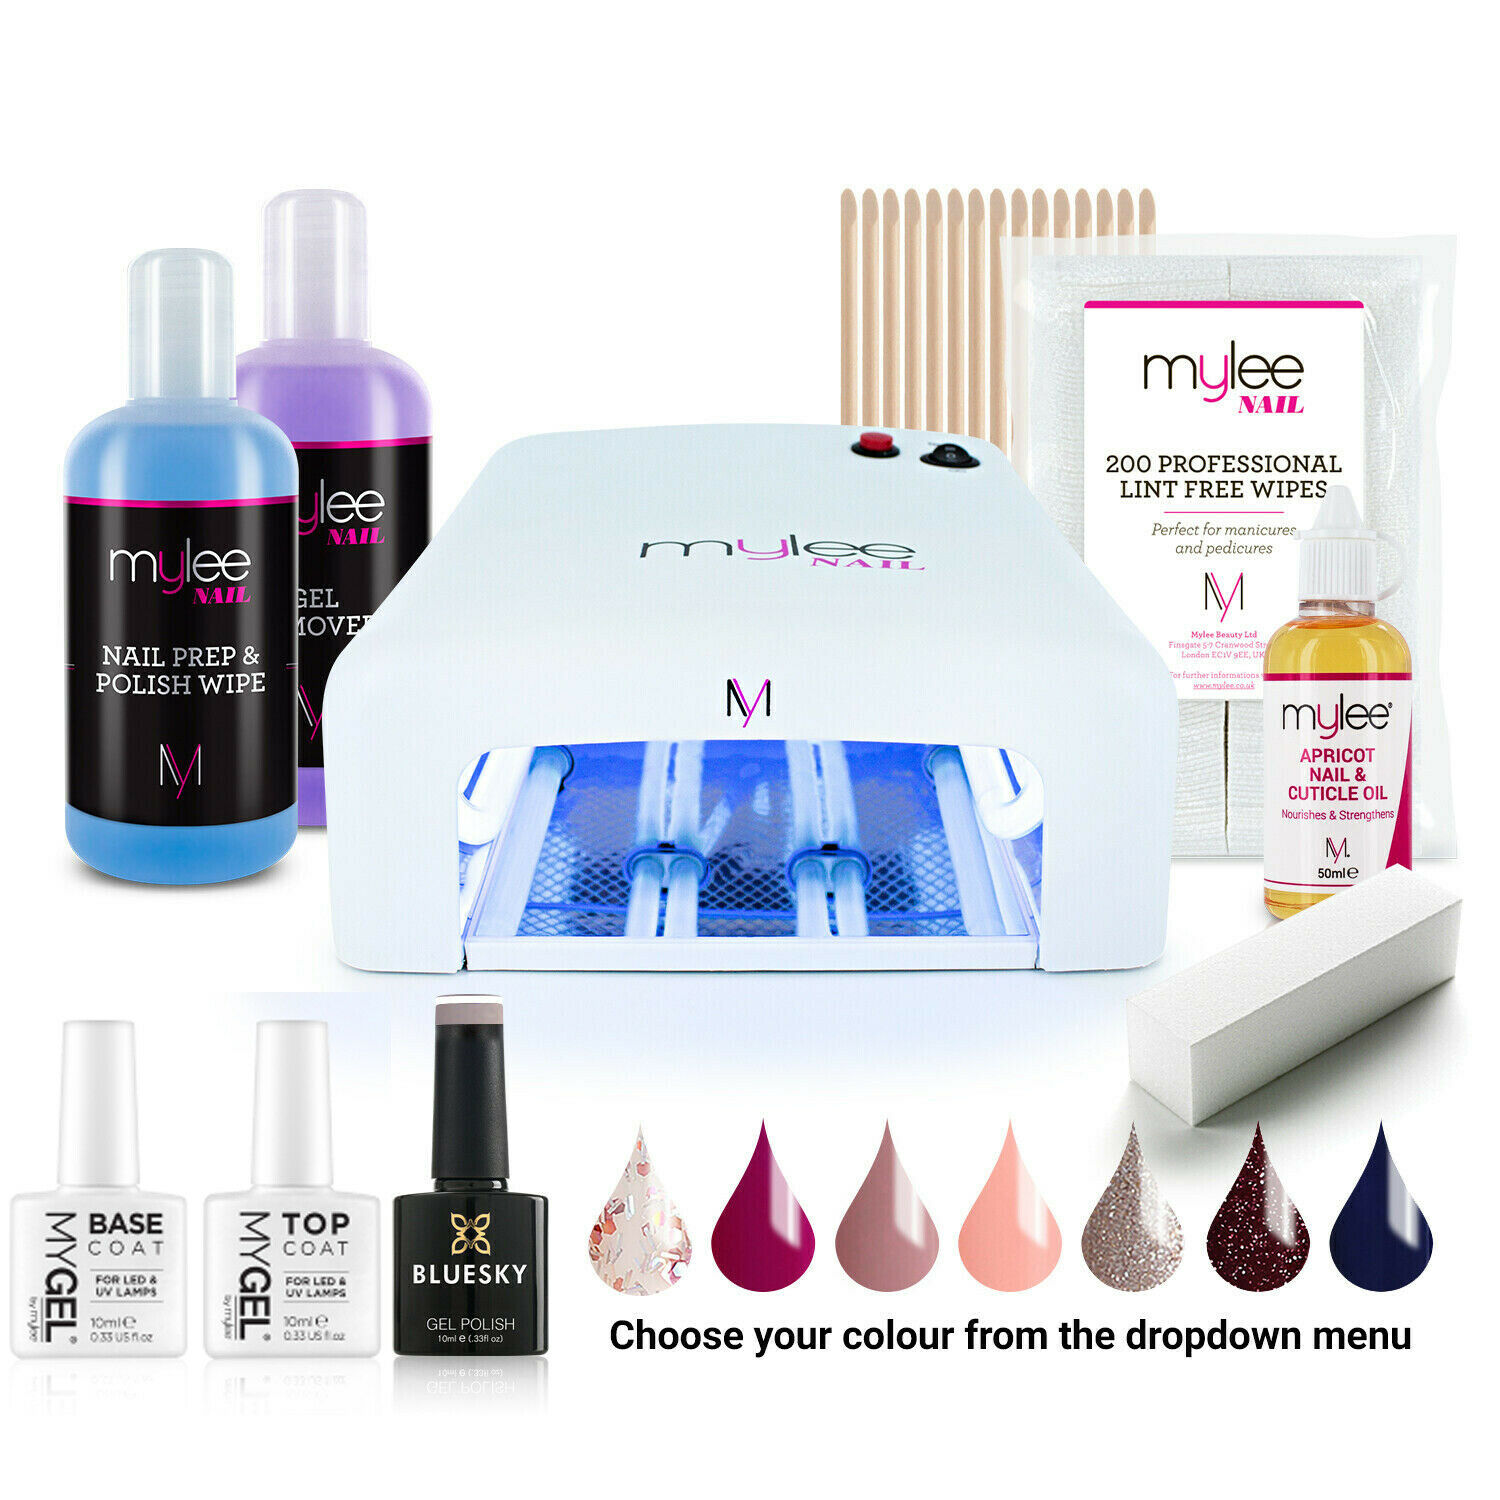 mylee nail lamp how to use